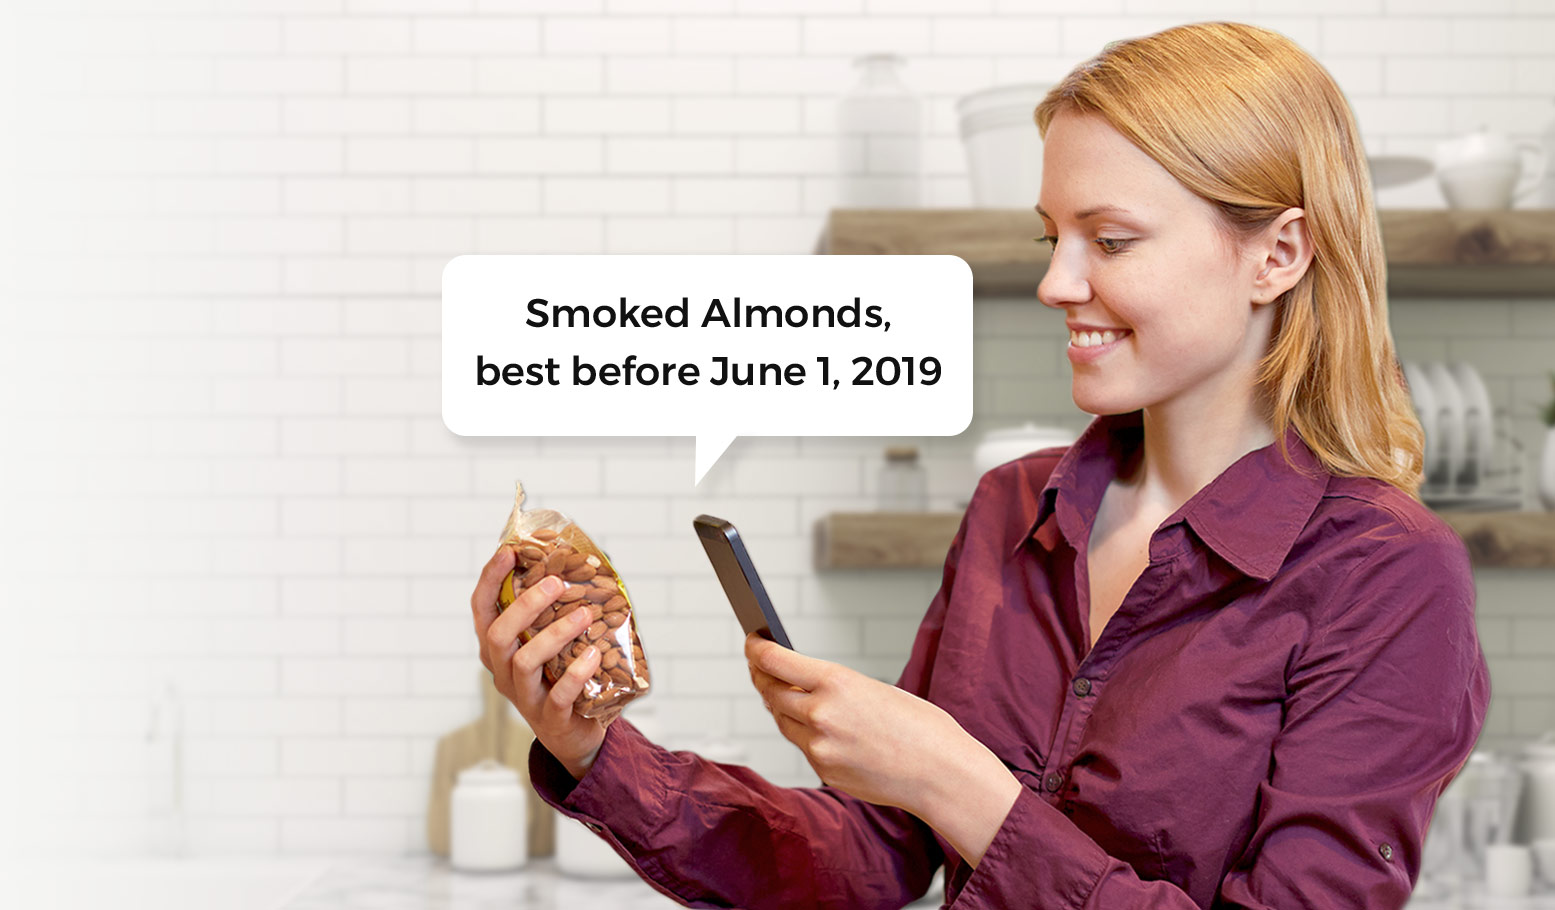 Woman holding phone up to bag of almonds. A speech bubble from the phone says: Smoked Almonds, expires June 11 2018